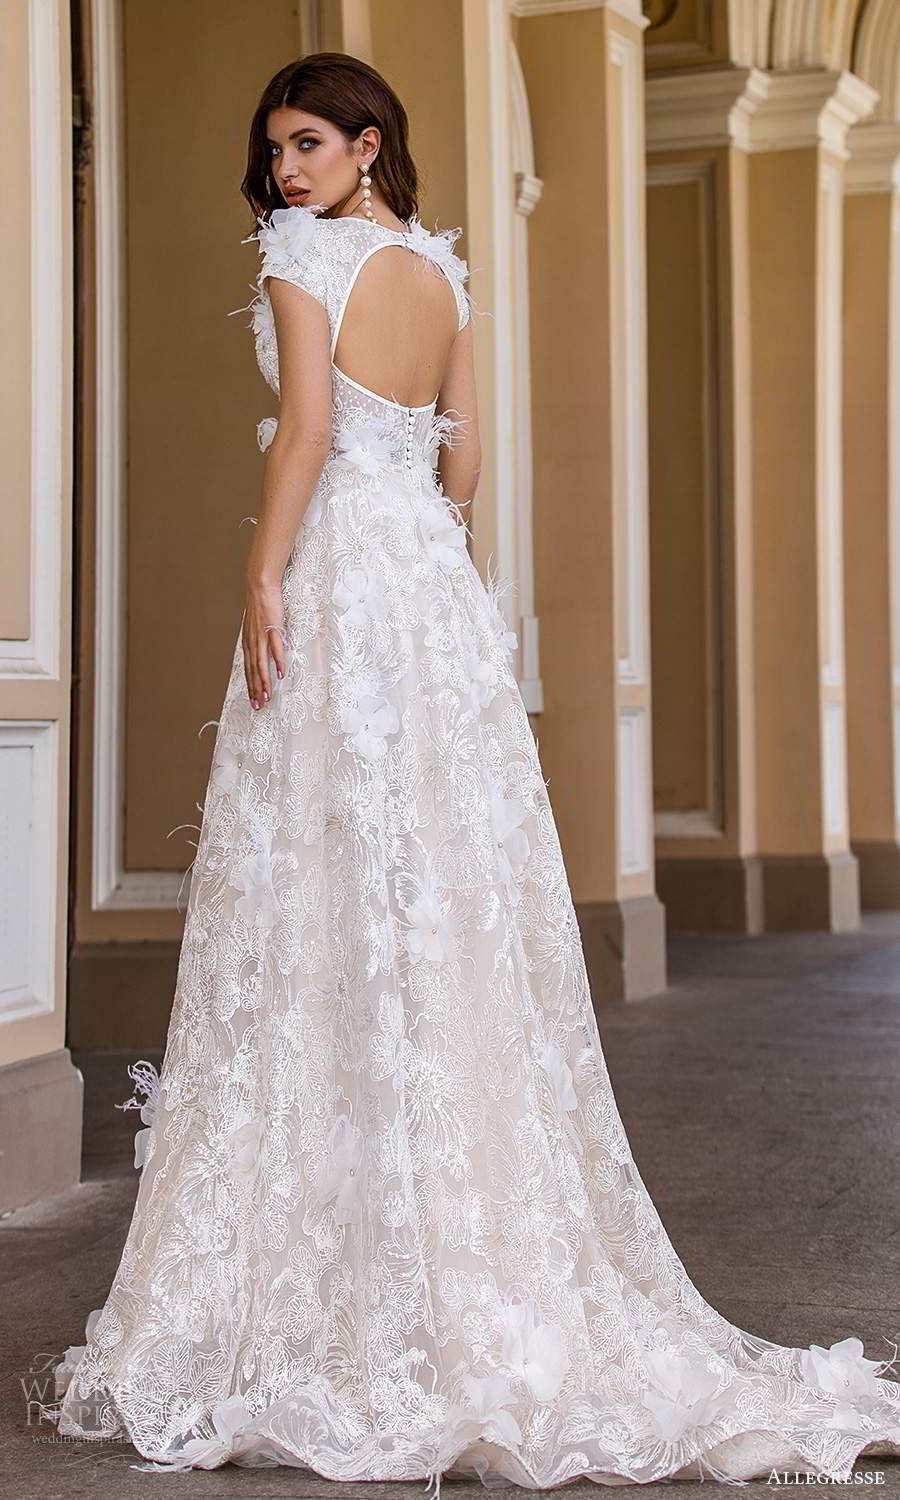 allegresse 2021 bridal short sleeves plunging v neckline fully embellished a line ball gown wedding dress chapel train keyhole back (10) bv